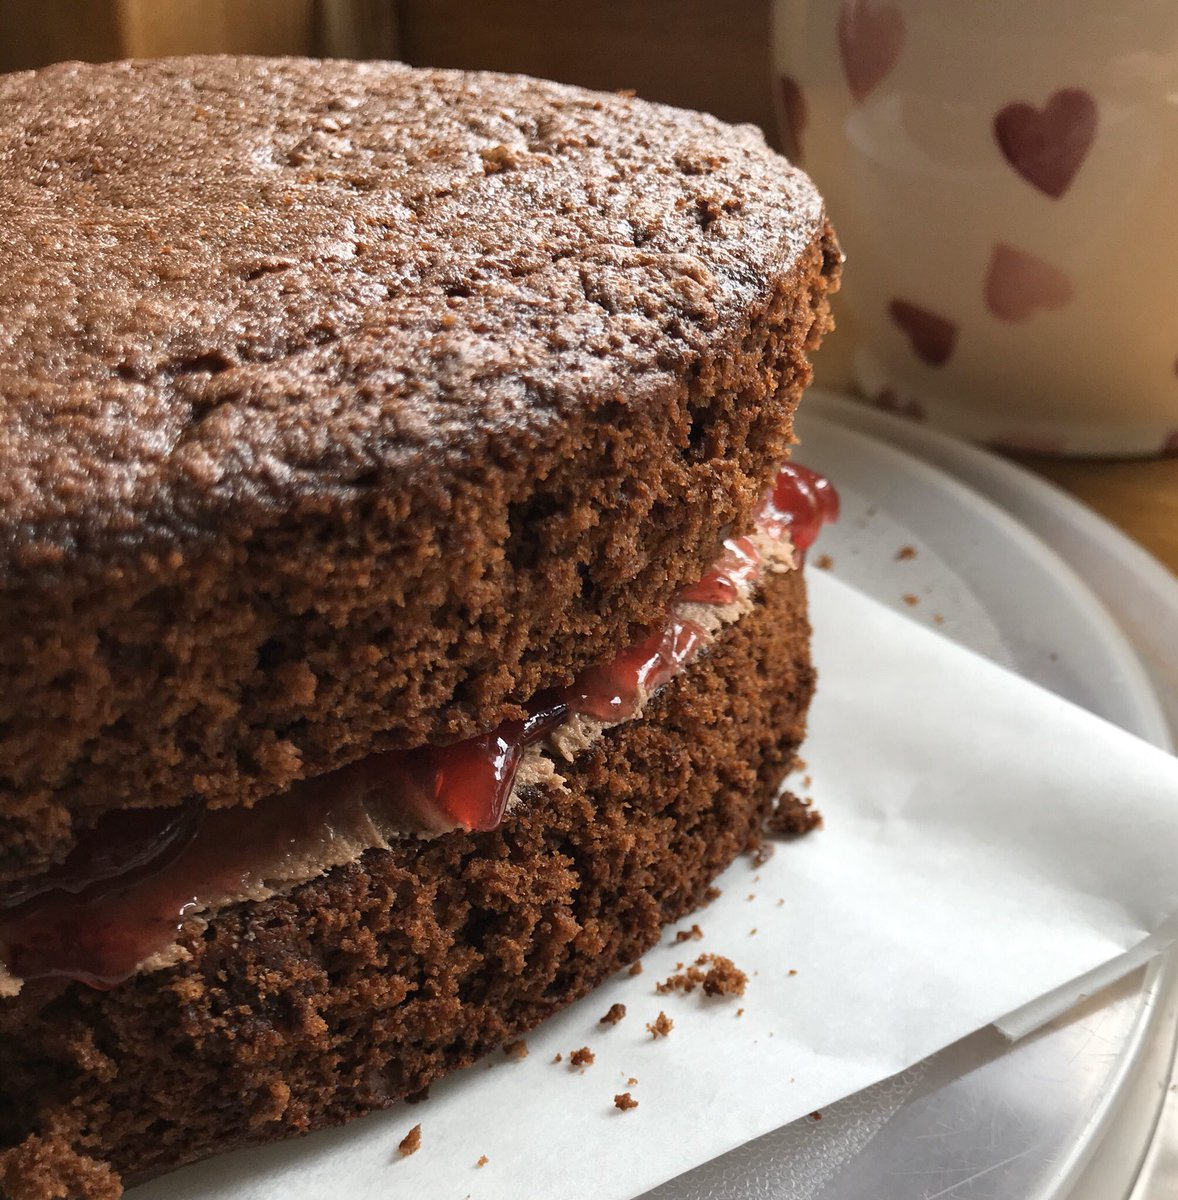 ...when it rains, we shall make (and eat) chocolate cake. A perfect way to unwind and enjoy a weekend afternoon.  #homemade #eggfree #chocolatefilth   pic.twitter.com/44XQY8Q6cW